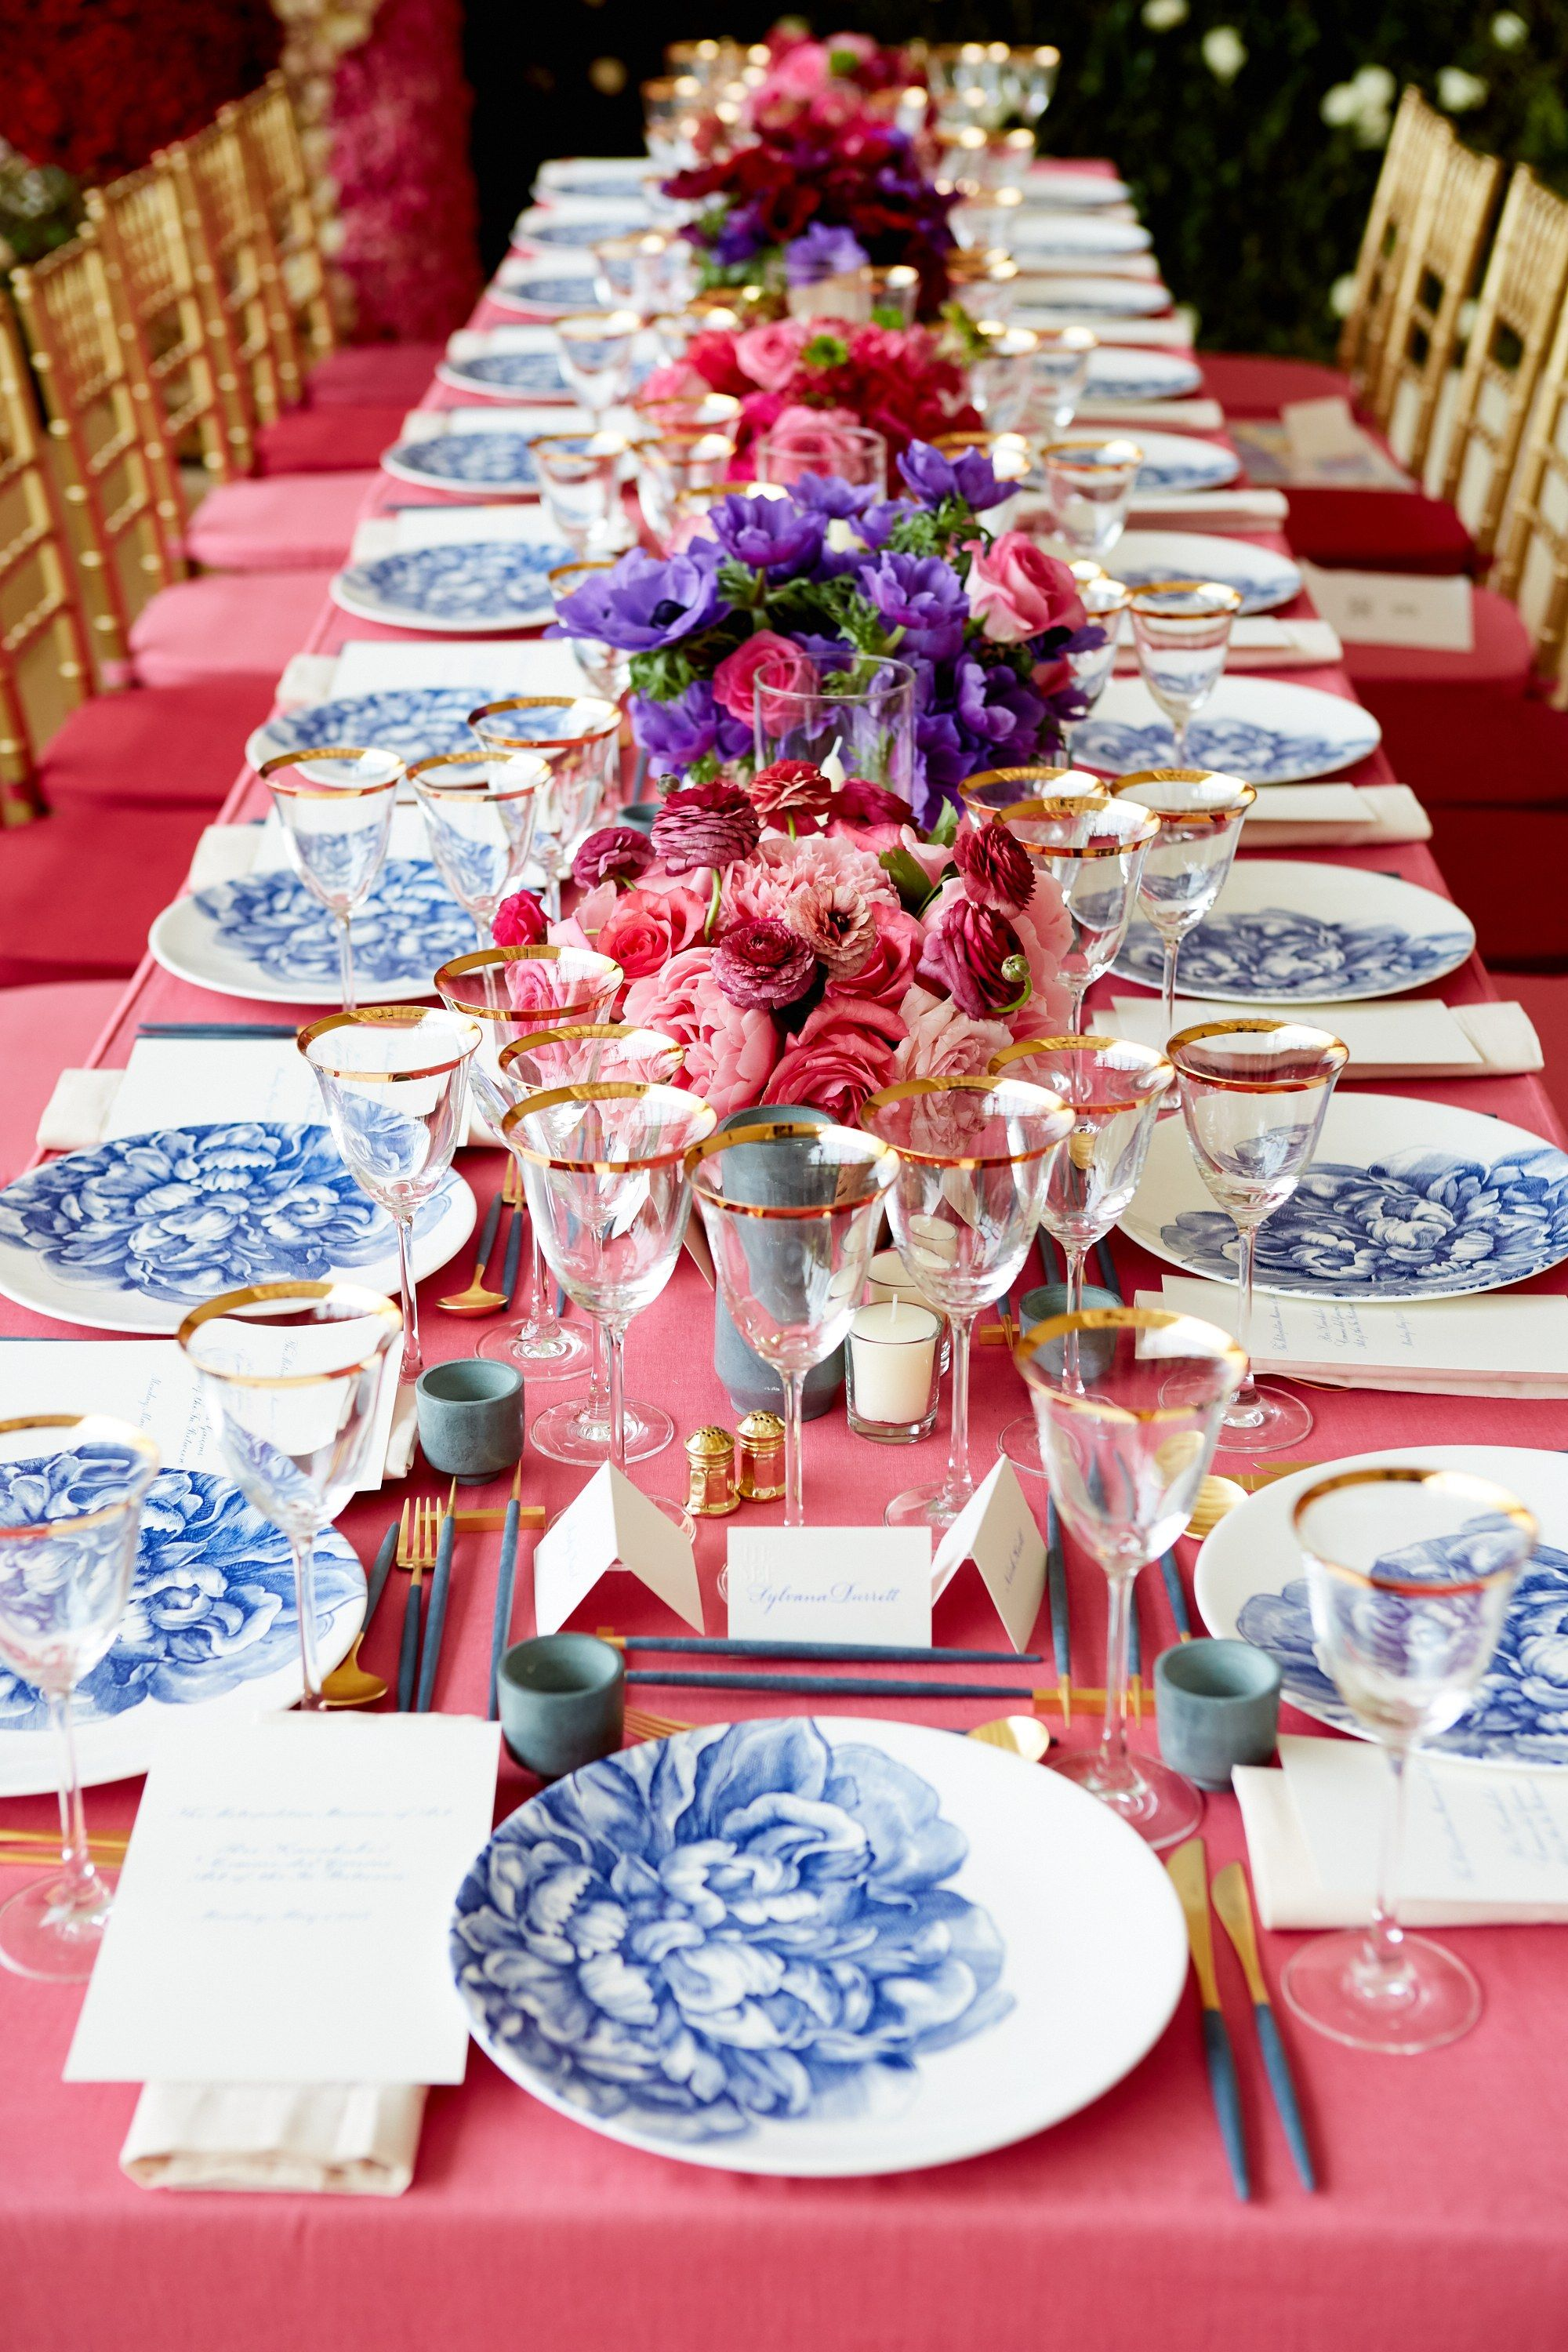 The 2017 Met Gala Tablescapes | Gala Greatness | Pinterest ...